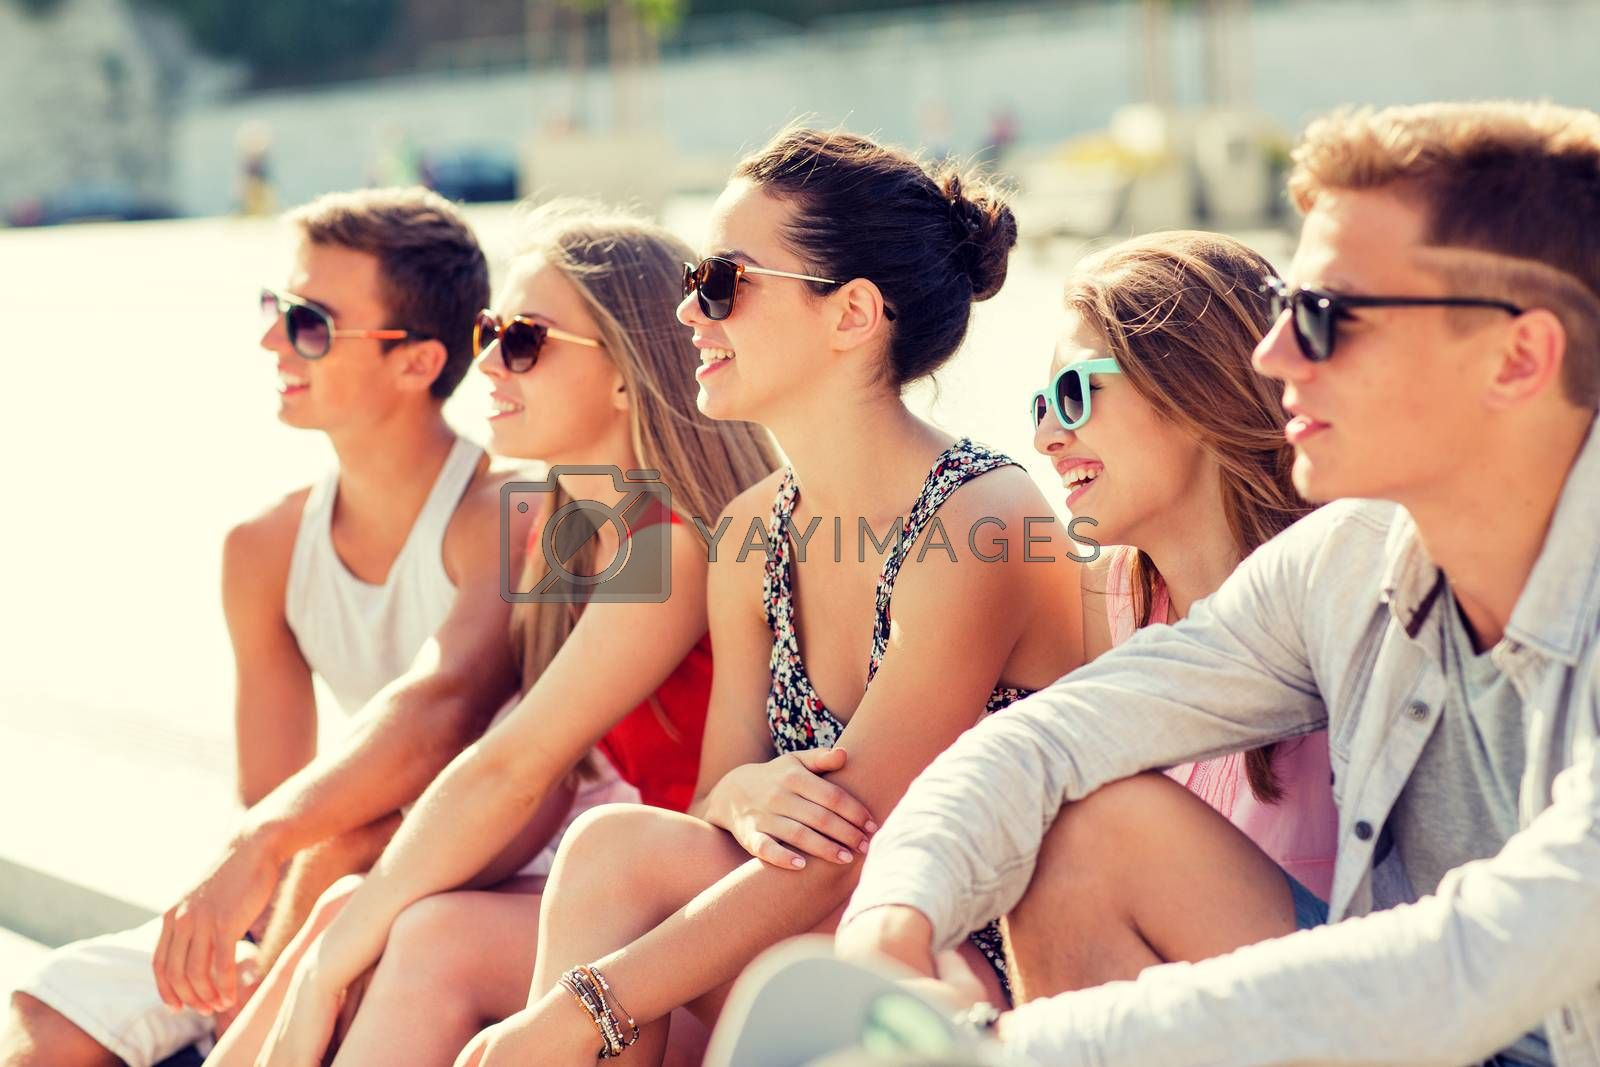 friendship, leisure, summer and people concept - group of smiling friends sitting on city square